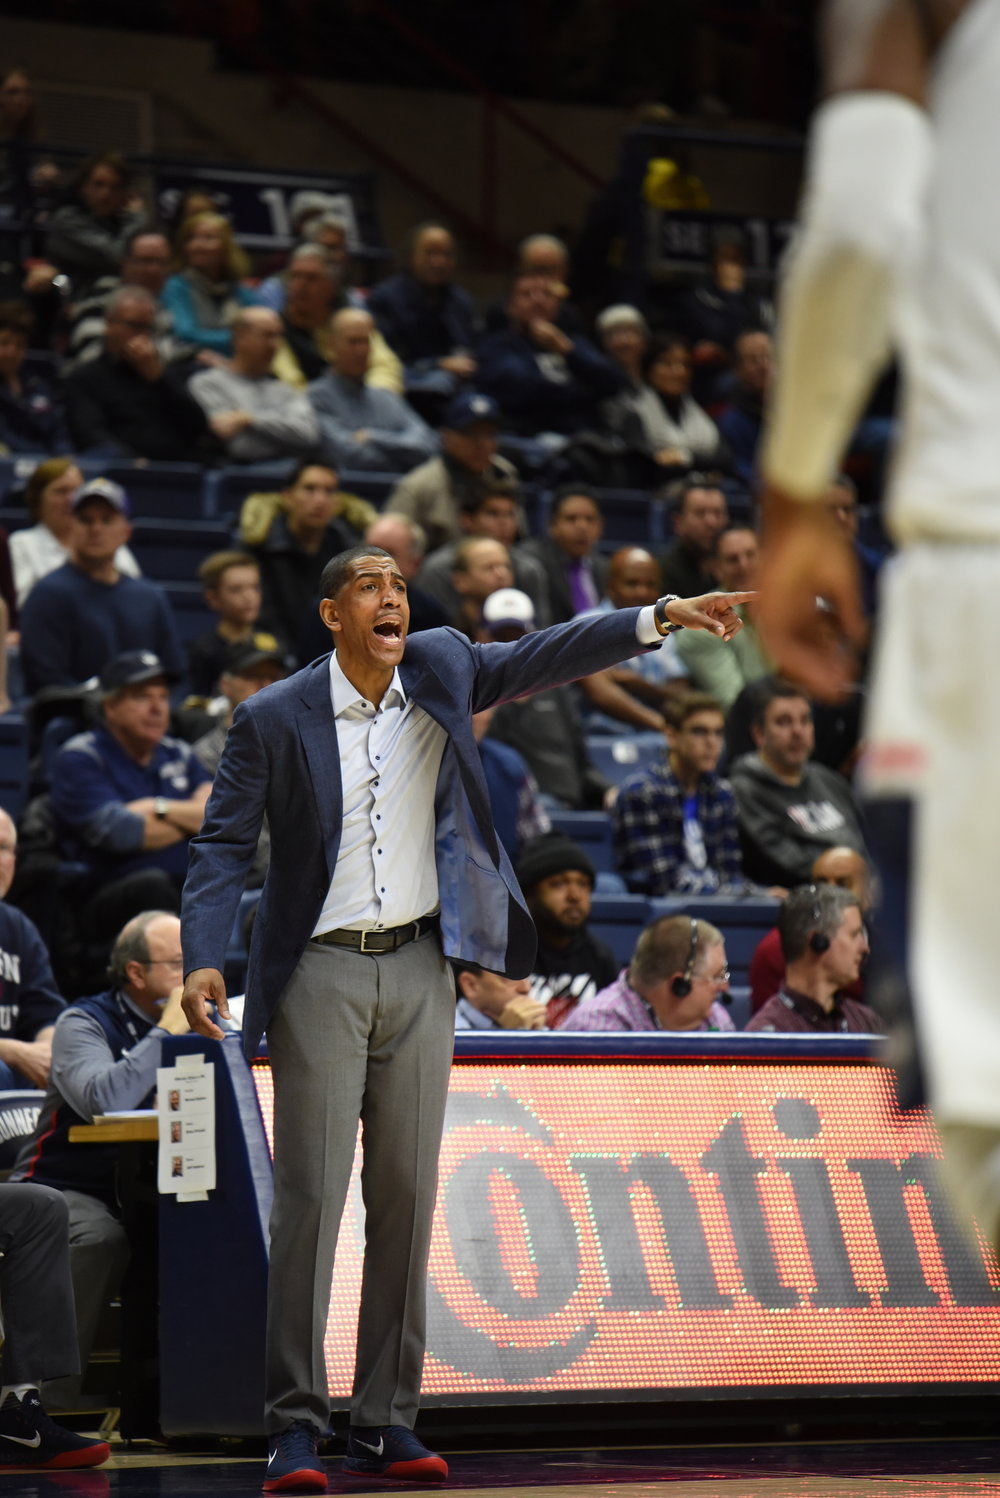 Kevin Ollie and Co. struggled mightily in a embarassing loss at Temple Sunday night. (Charlotte Lao/The Daily Campus)